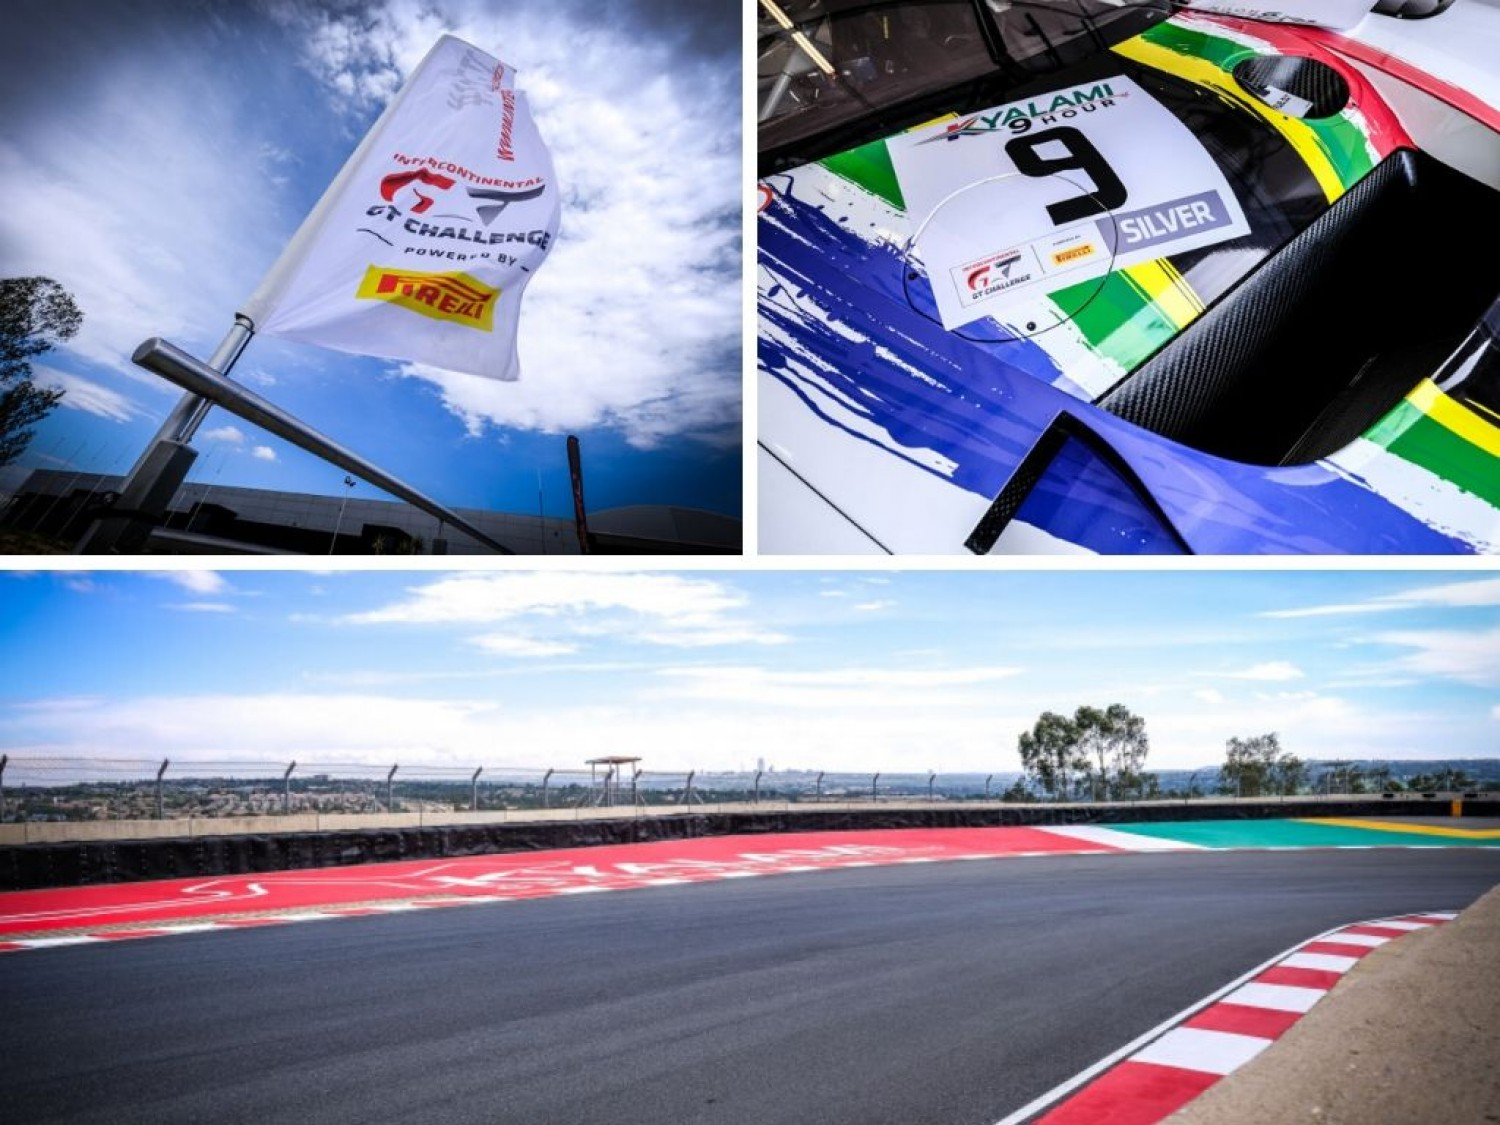 Intercontinental GT Challenge season set for spectacular finale at revived Kyalami 9 Hour